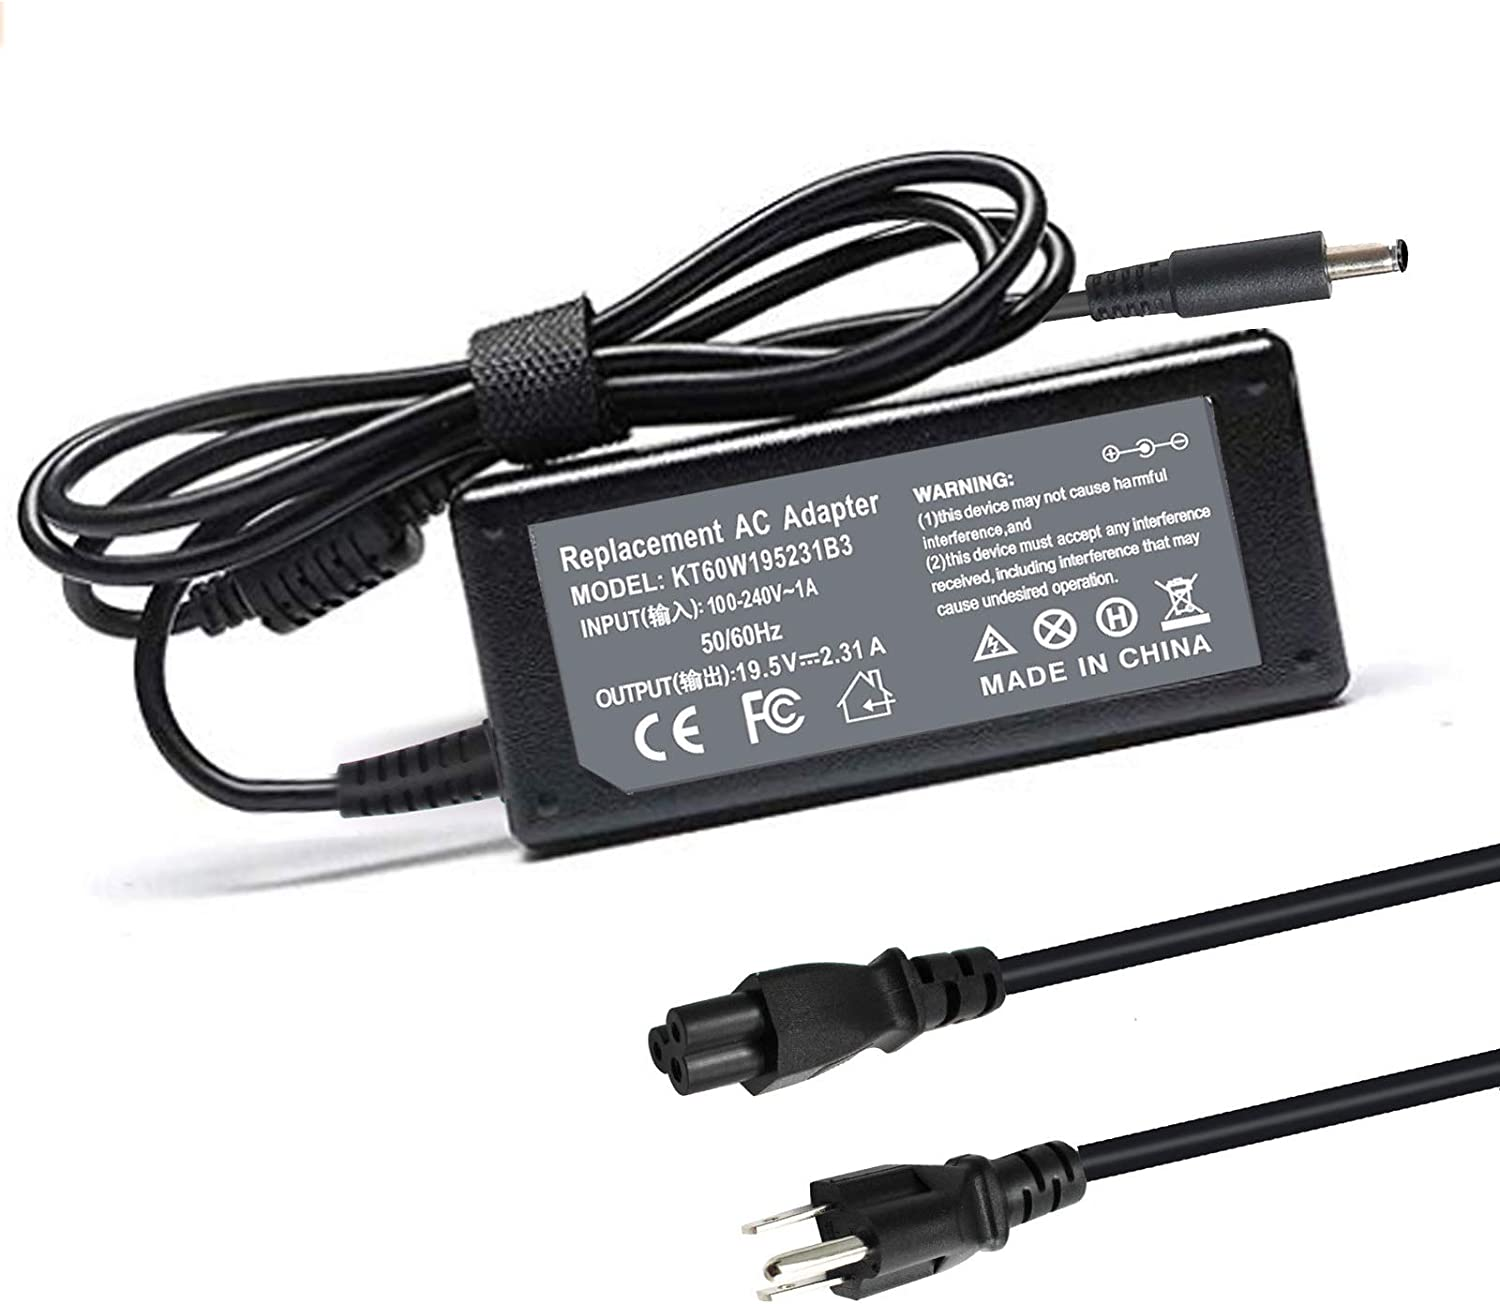 Shareway 19.5V 2.31A 45W AC Adapter Fit for Dell Inspiron 3583 3580 3581 3780 3785 3585 3593 3793 5593 5558 5559 P51F P58F P63F P75F P78F P24T P25T P32E P28E P30E P57G P60G P83G Power Supply Cord